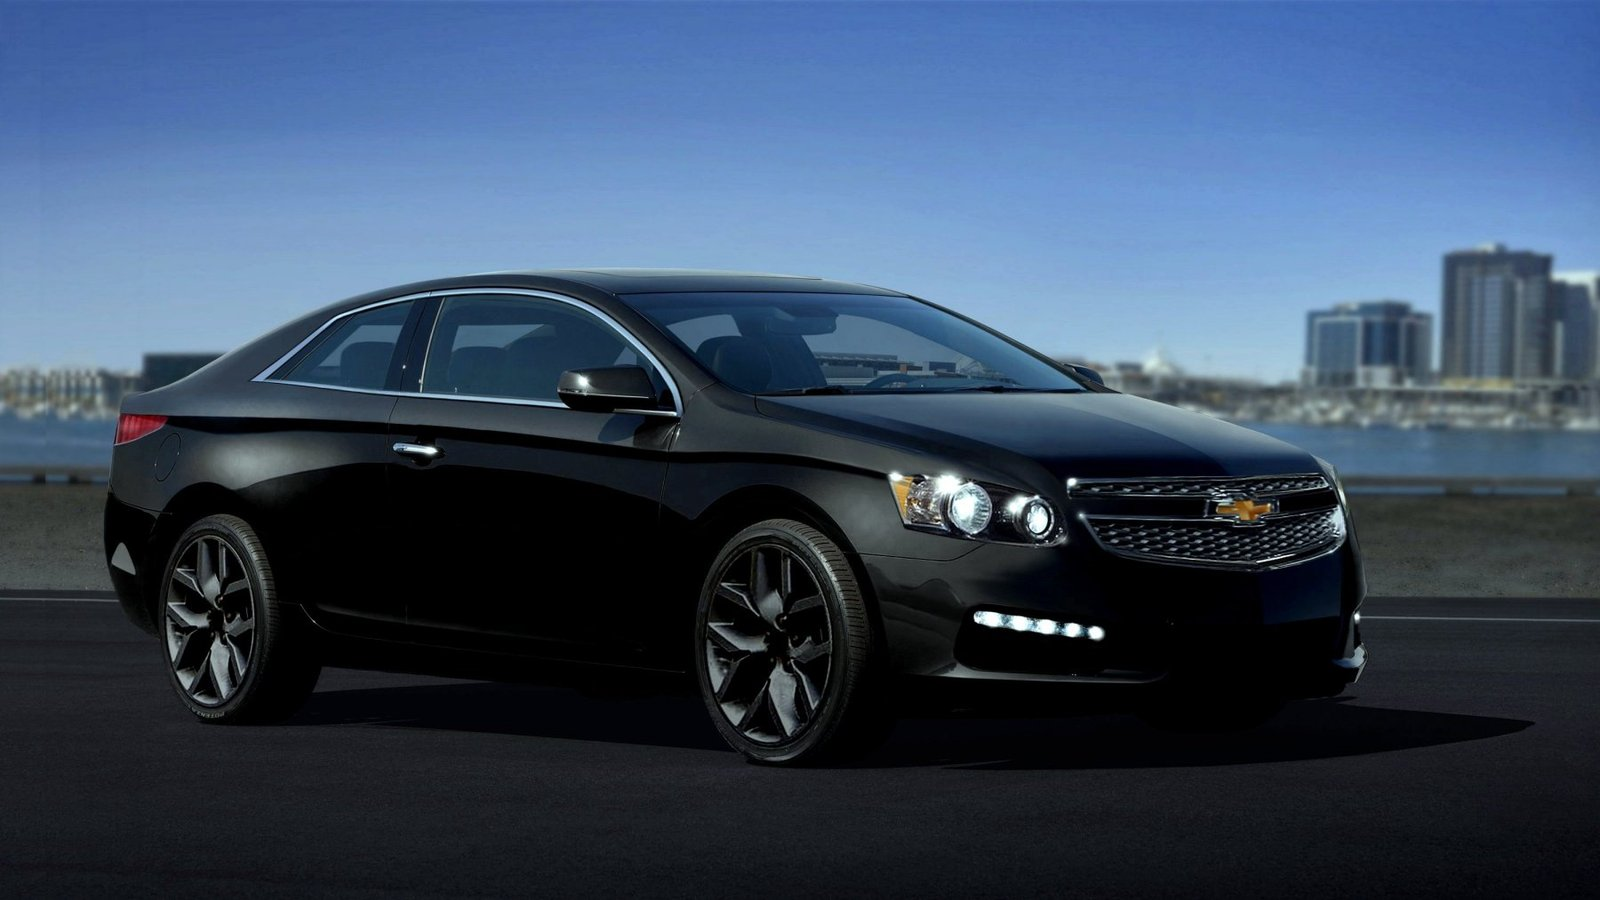 2013 chevrolet impala photos informations articles. Black Bedroom Furniture Sets. Home Design Ideas